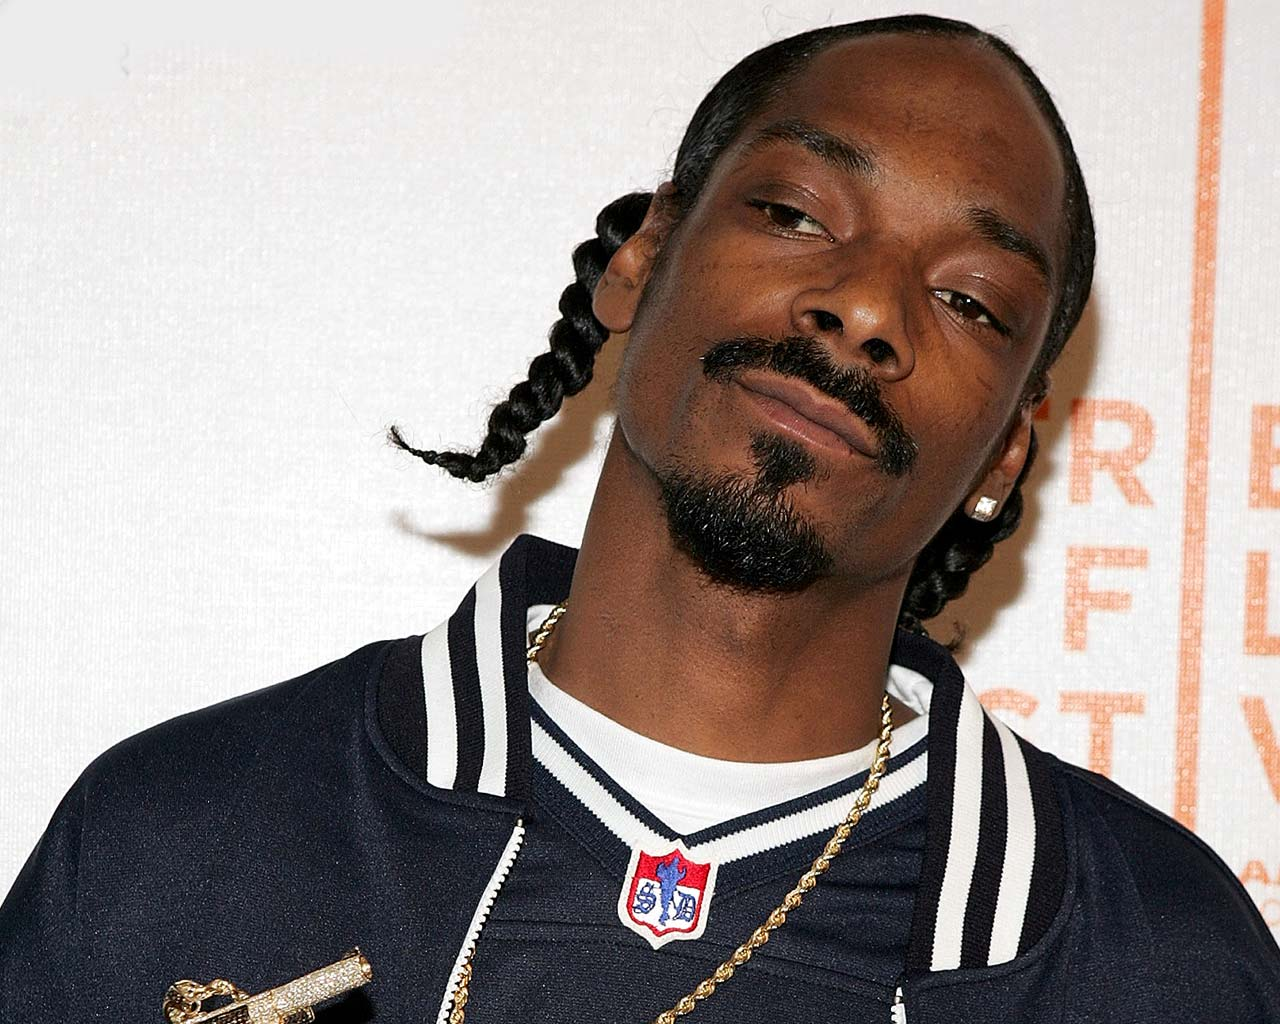 Snoop Dogg Backgrounds, Compatible - PC, Mobile, Gadgets| 1280x1024 px